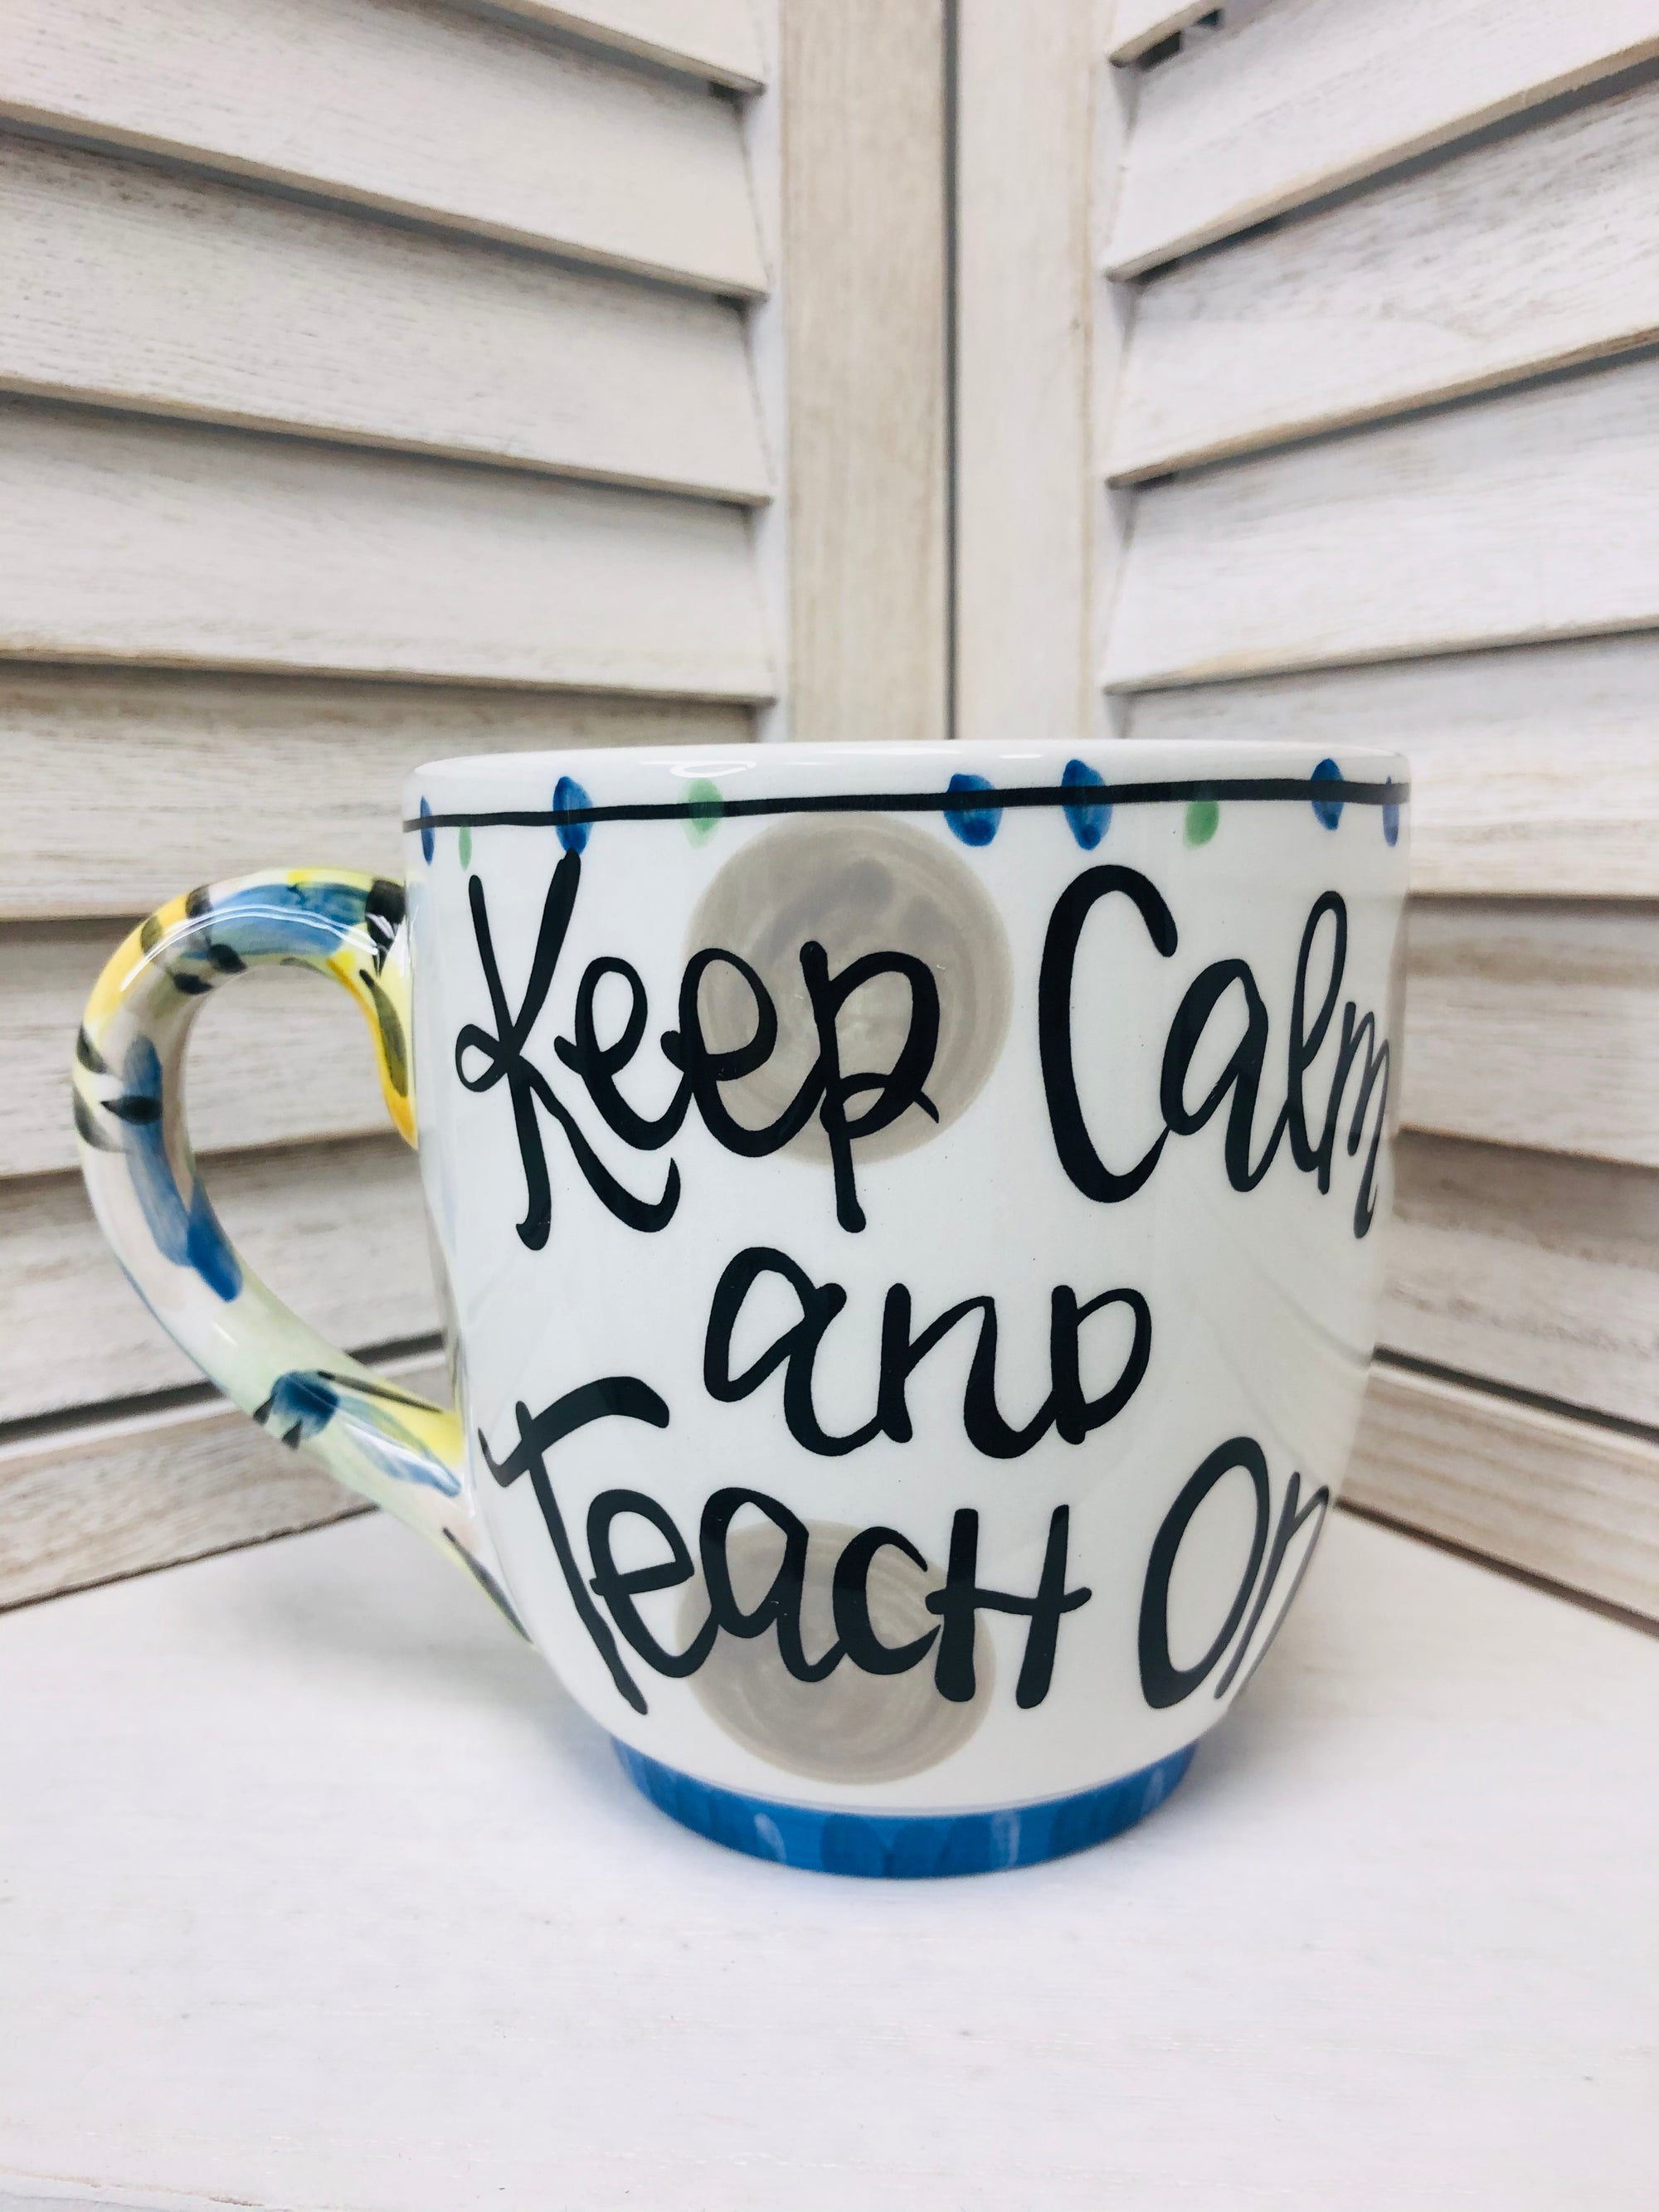 Keep Calm and Teach On Mug GH